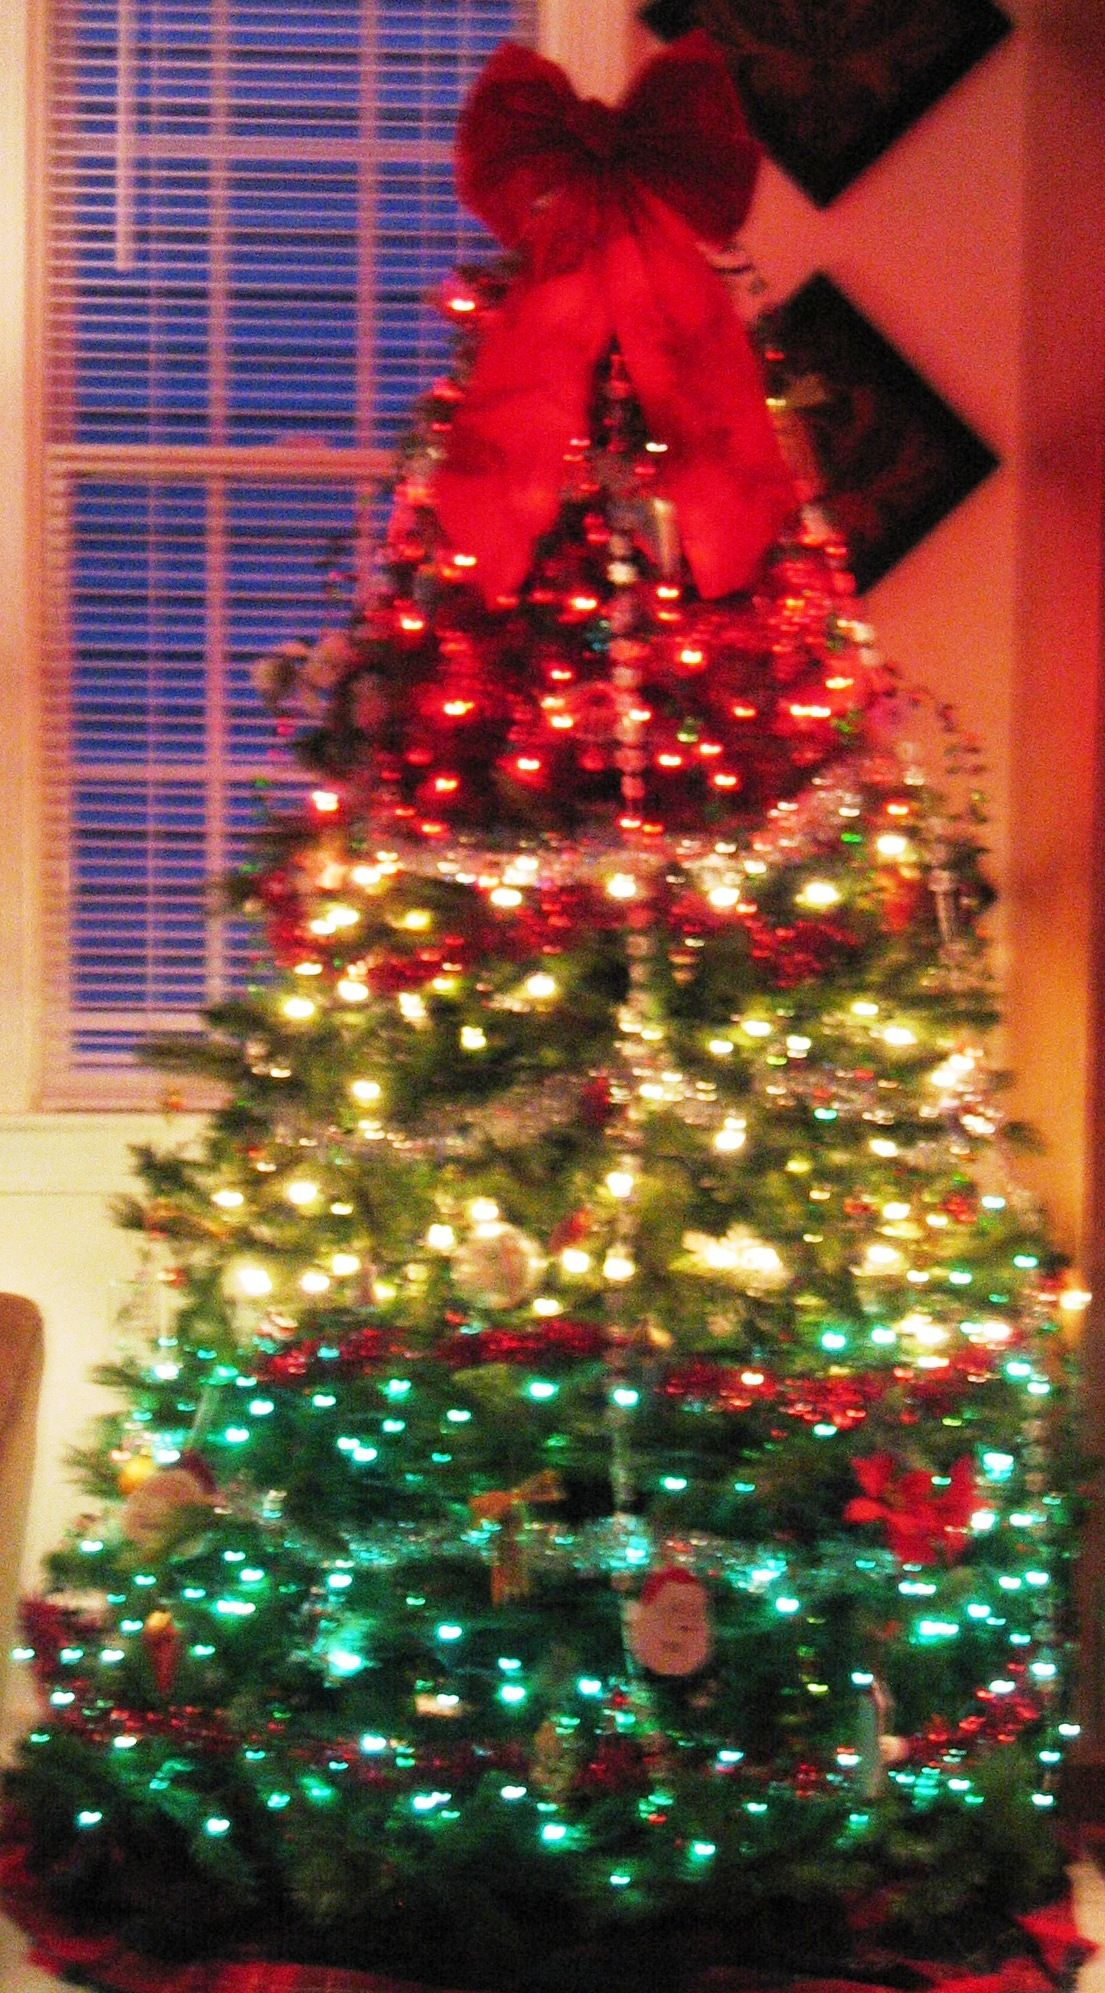 Red, White & Green Christmas Tree